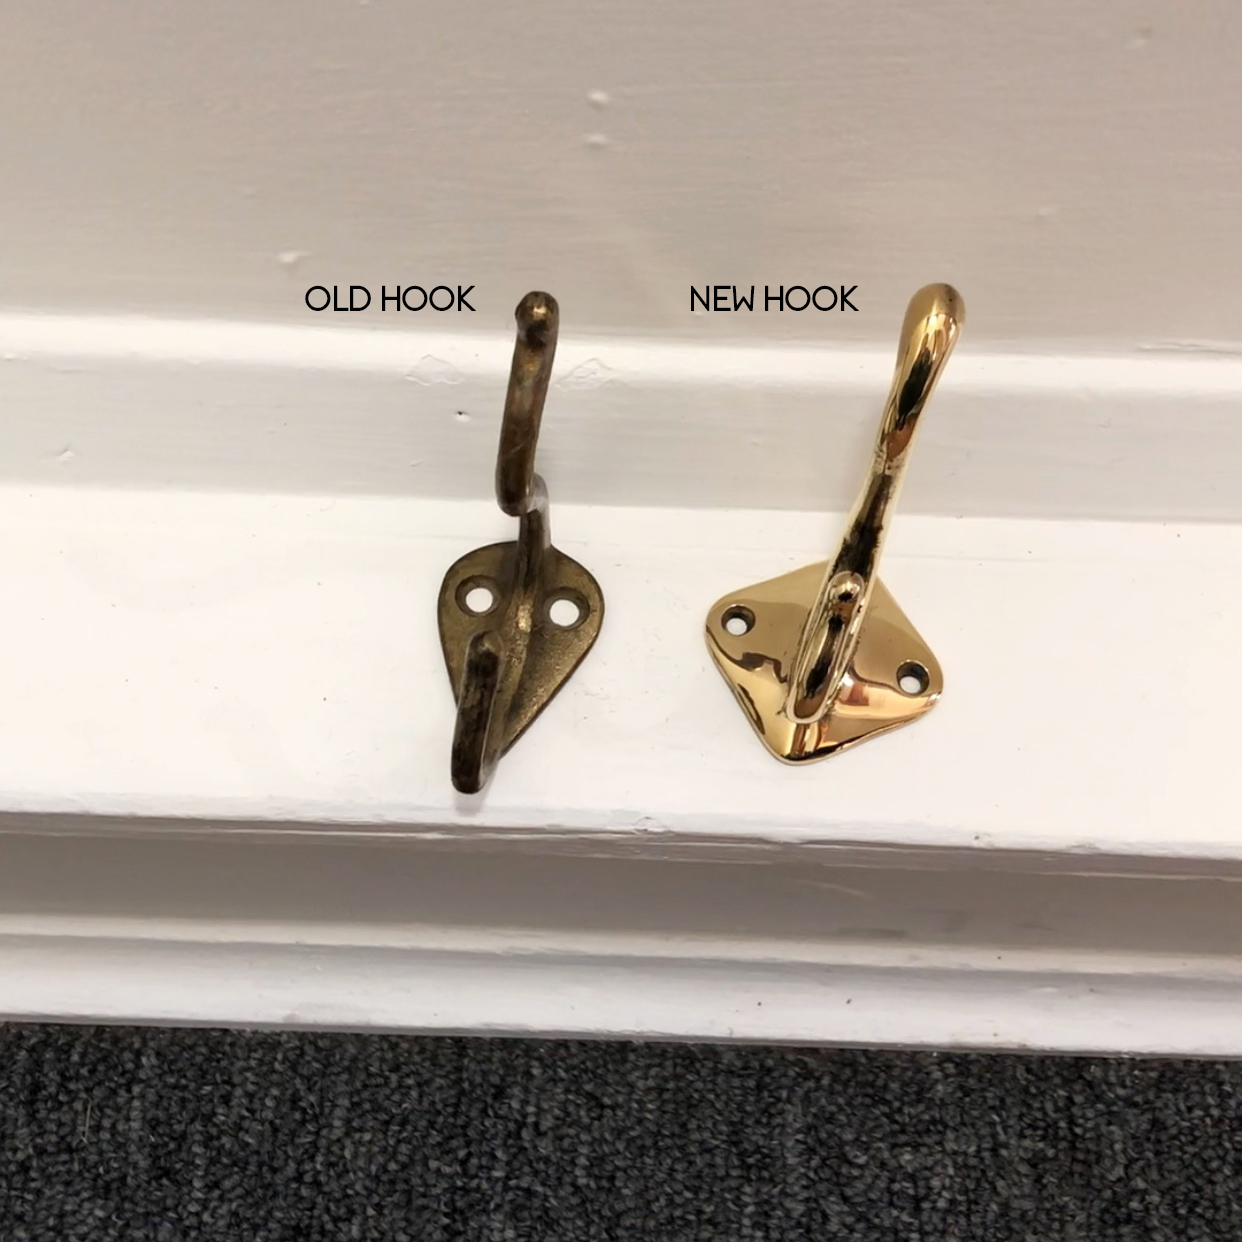 Brass Patina Hook vs. New Brass Hook